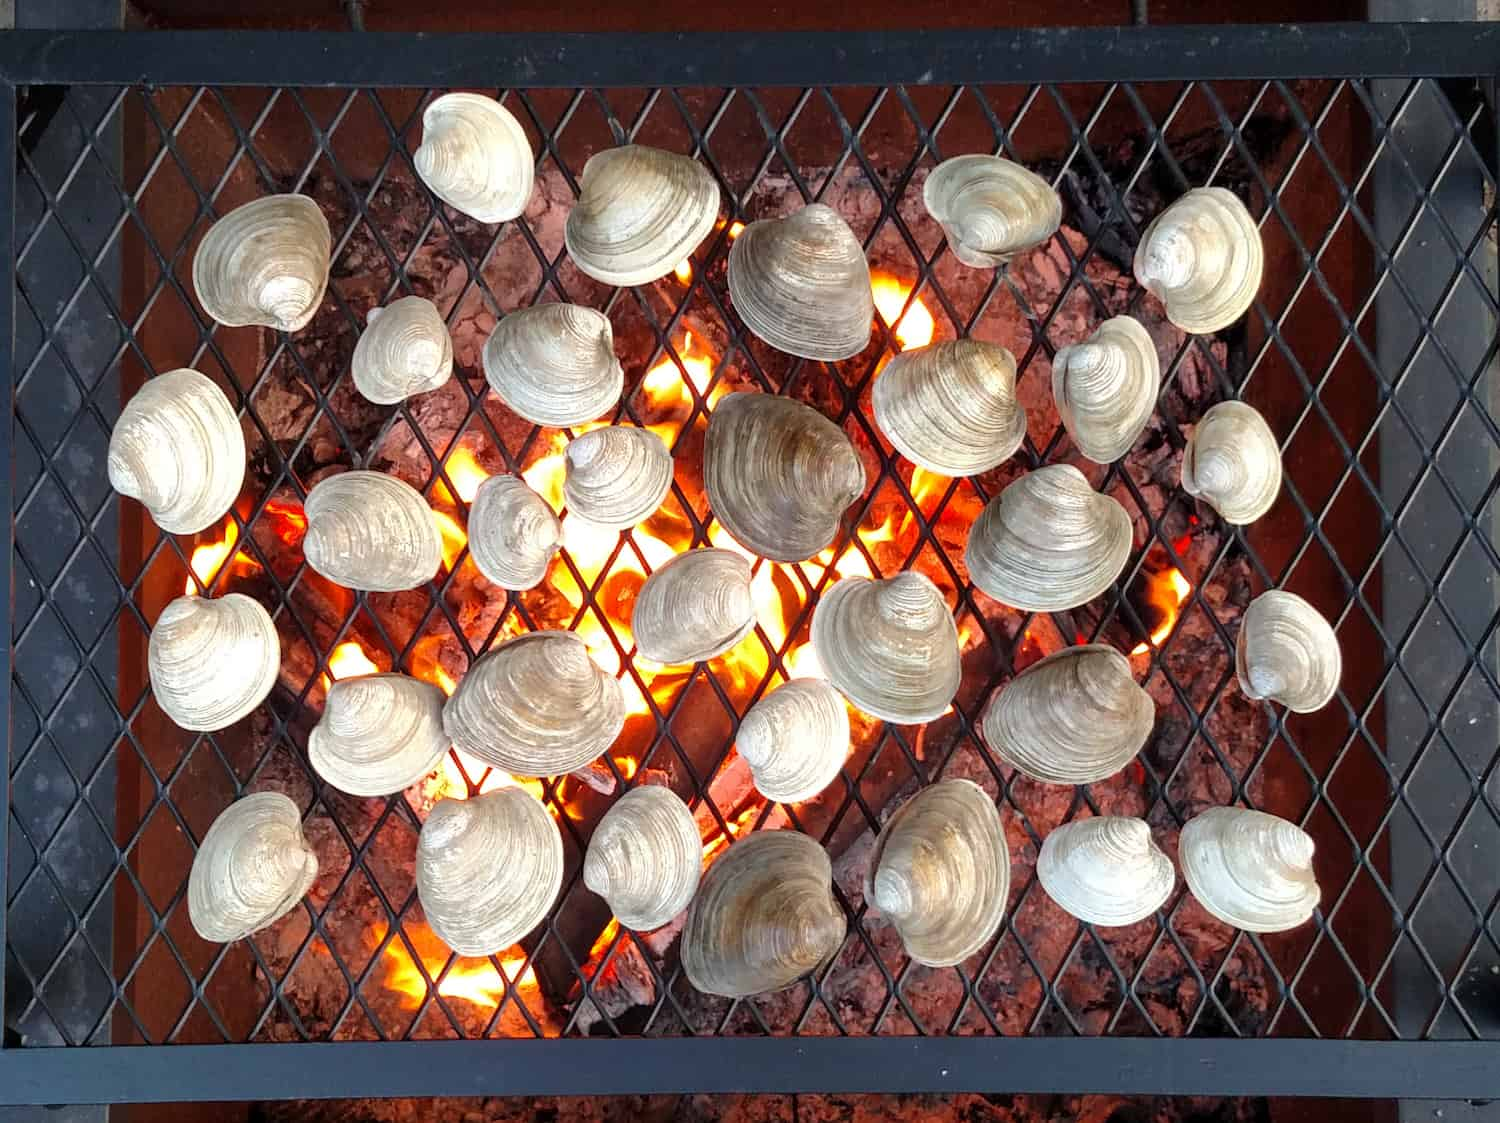 clams on a fire pit grate